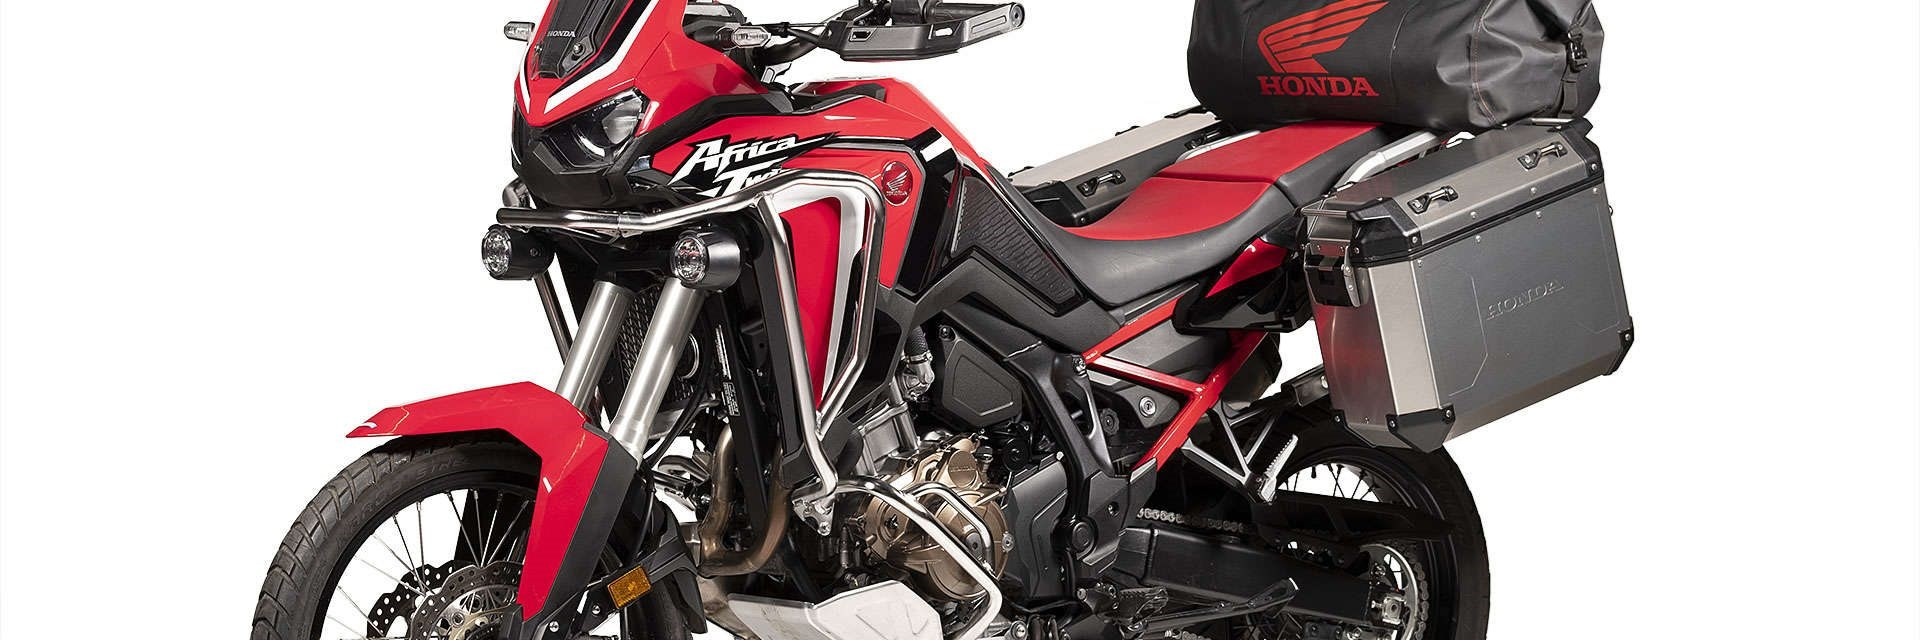 AFRICA TWIN - SWISS LIMITED EDITION